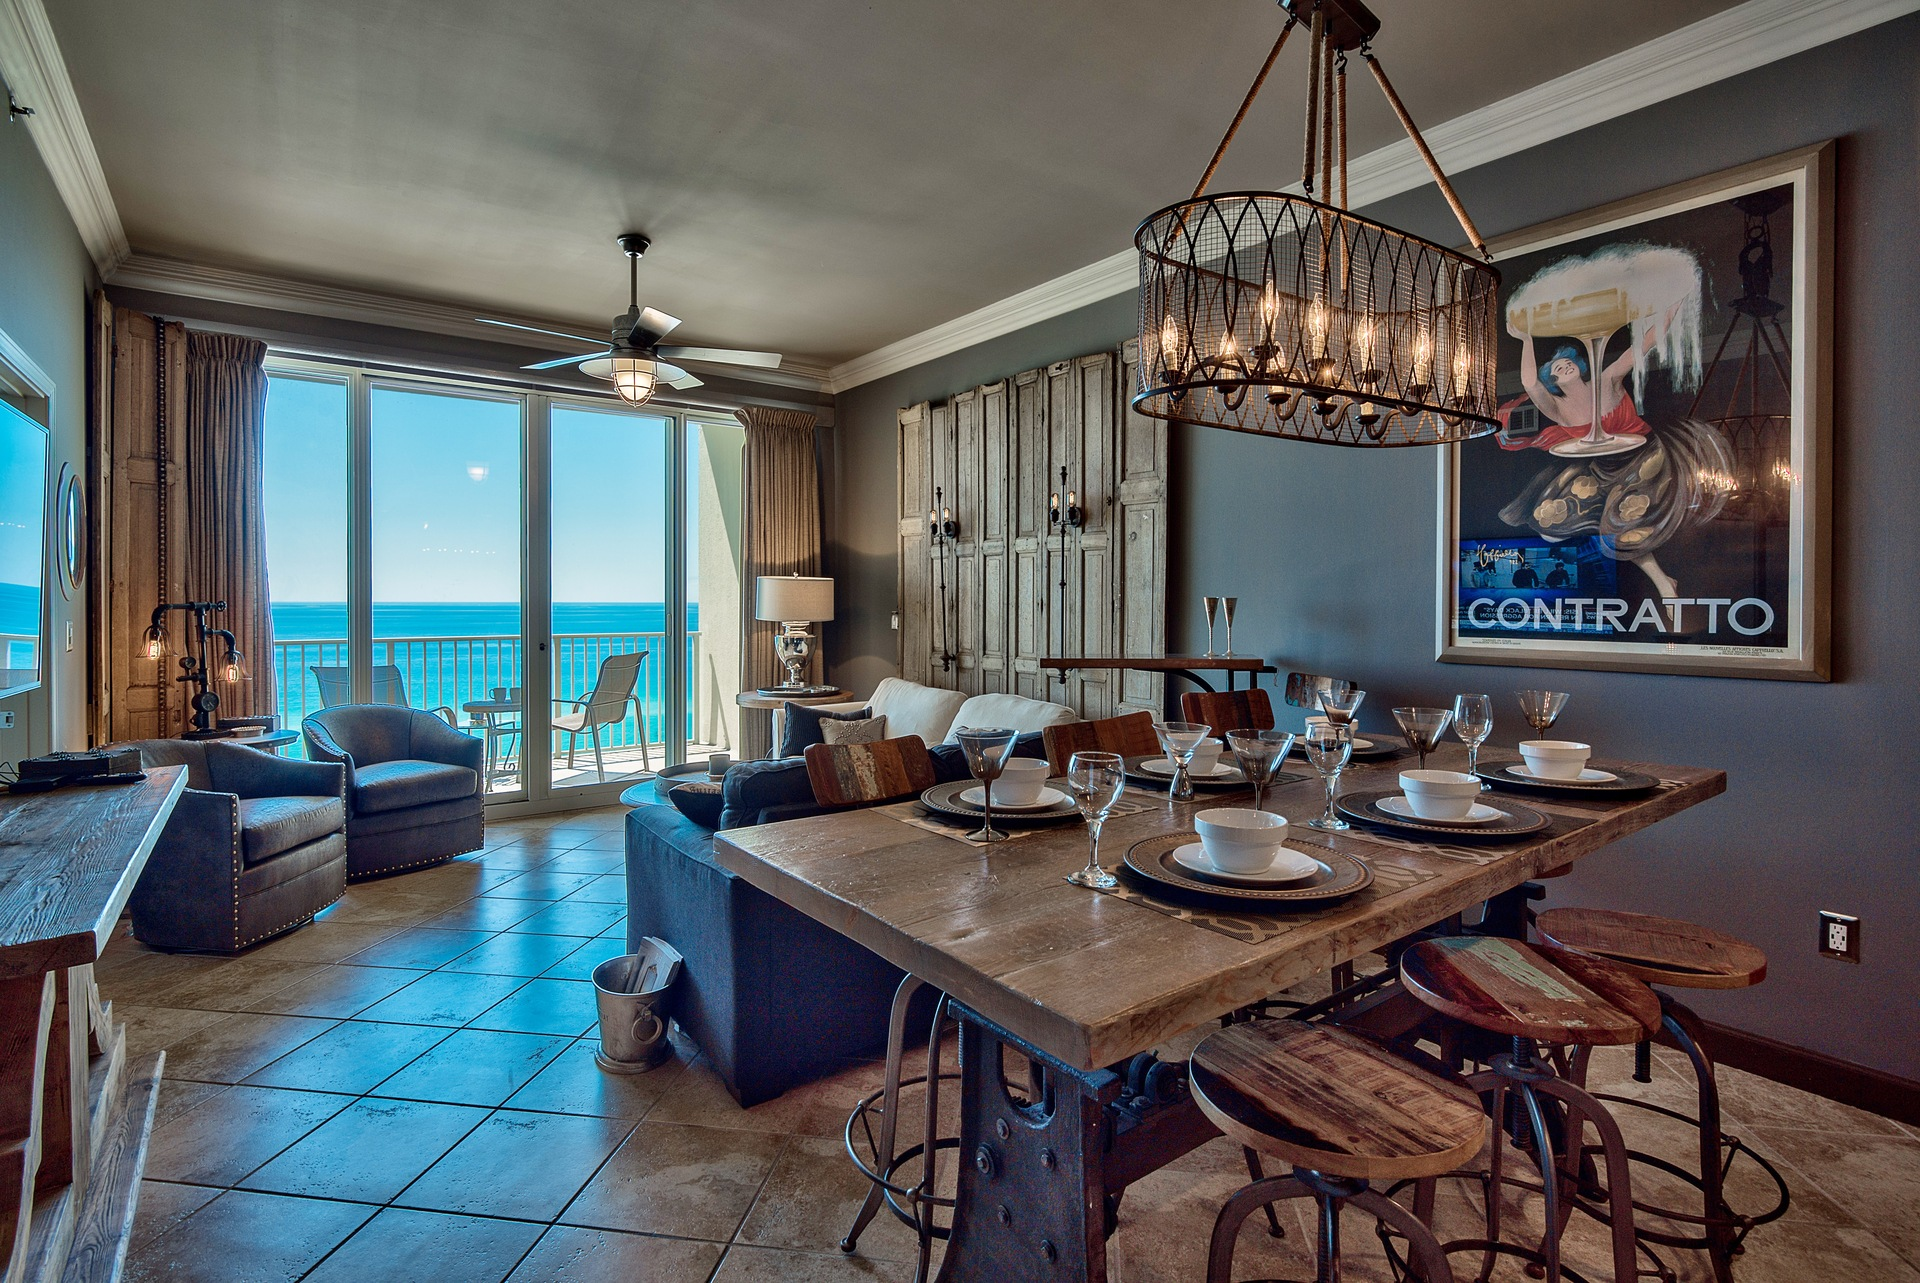 Open concept design with a view of the Gulf as soon as you enter!